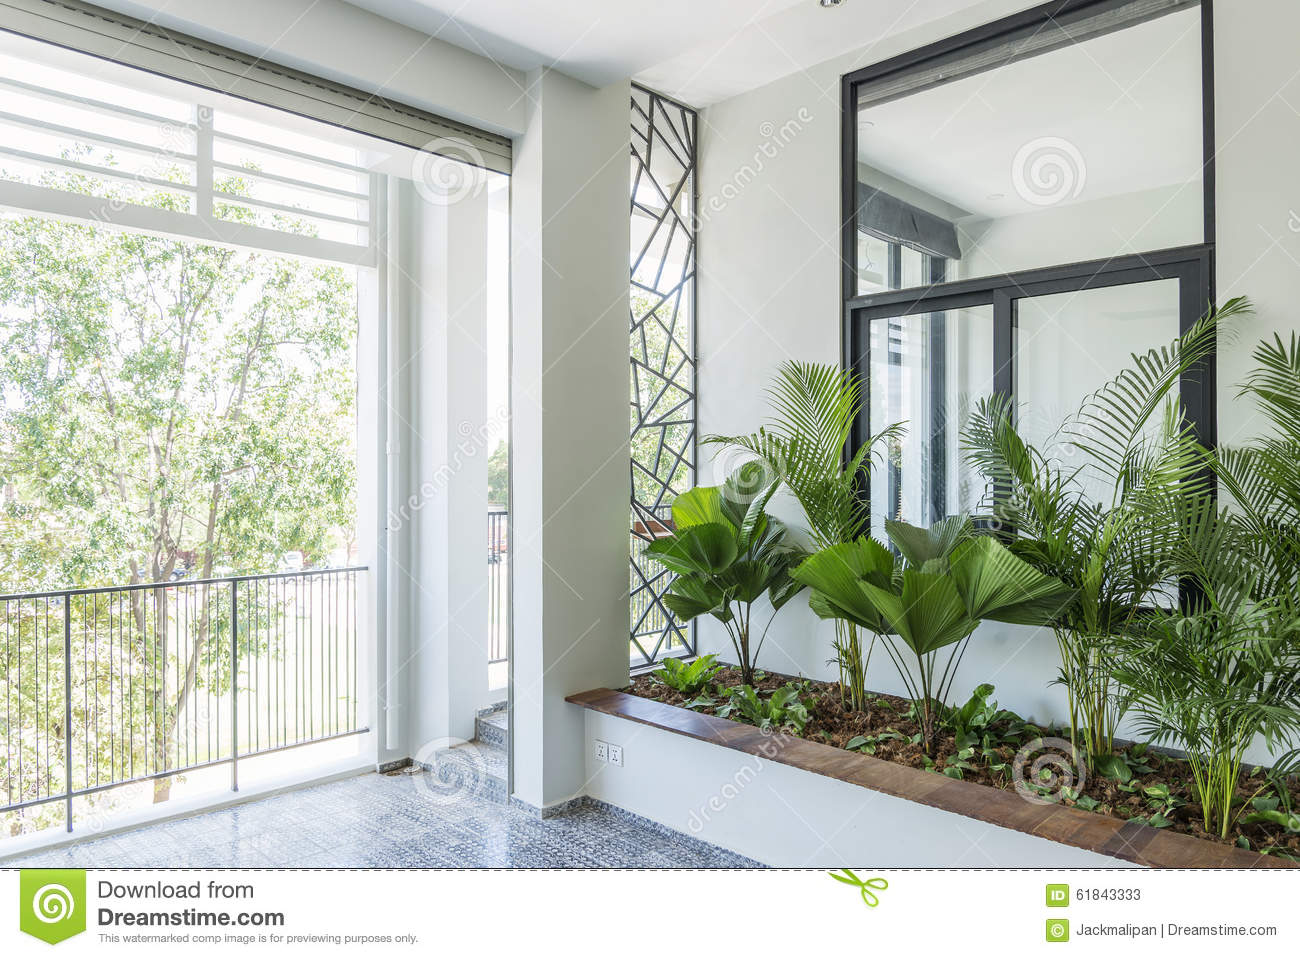 Balcony Garden Design small balcony garden ideas 1 Modern Contemporary Interior Design Balcony Garden Stock Photos